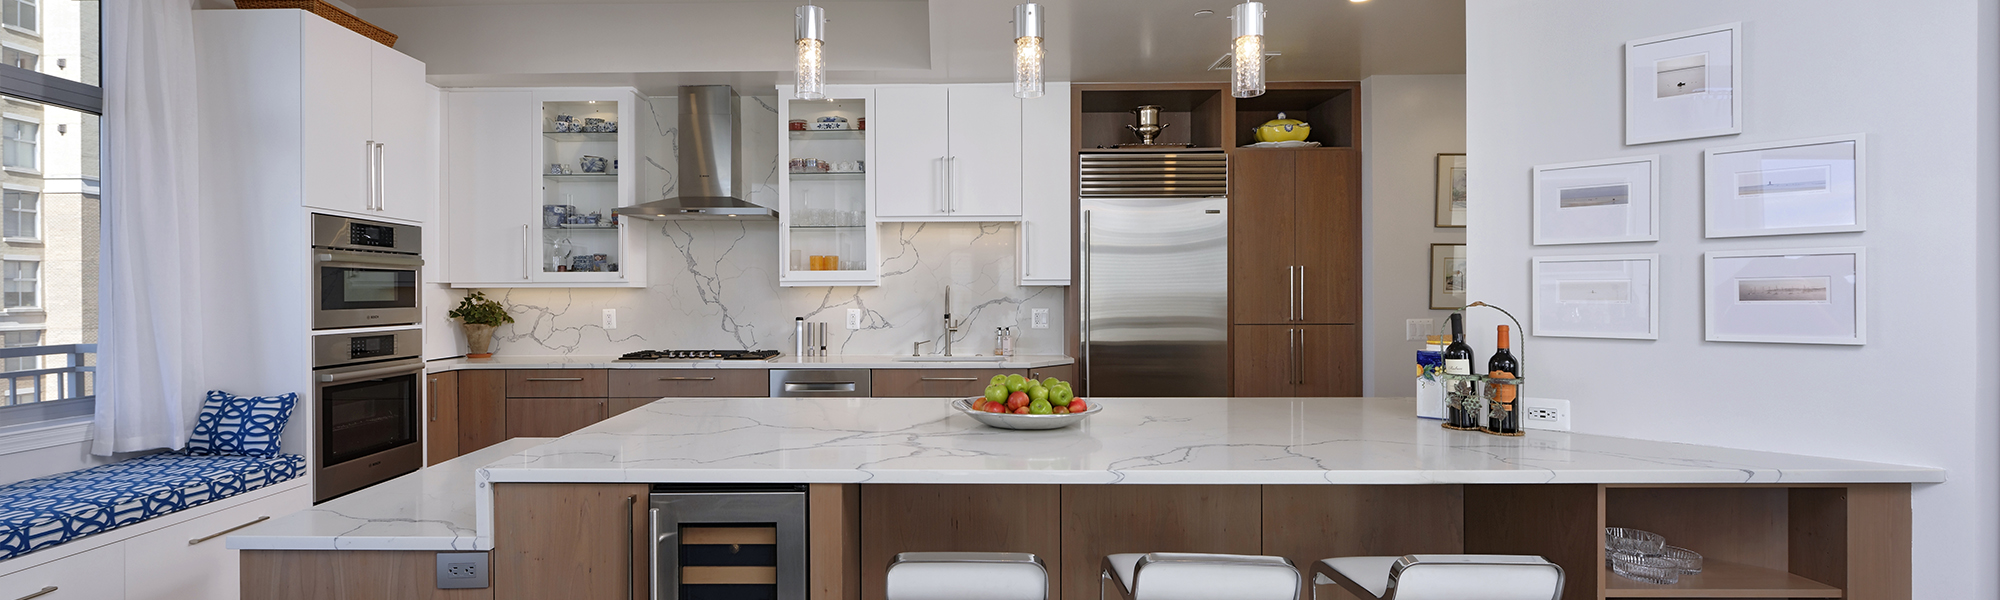 Sleek Kitchen Design - Condominium Remodel DMV